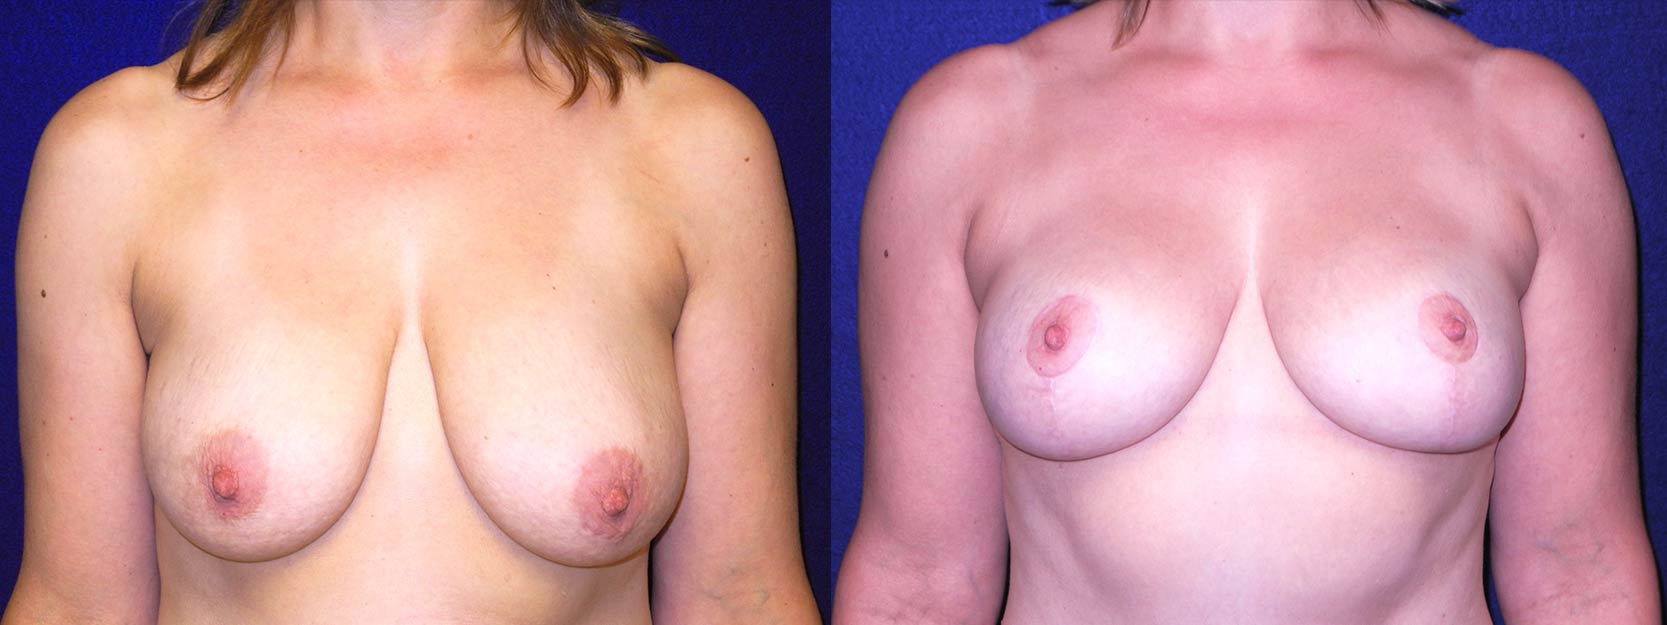 Frontal View - Breast Lift After Pregnancy & Weight Loss